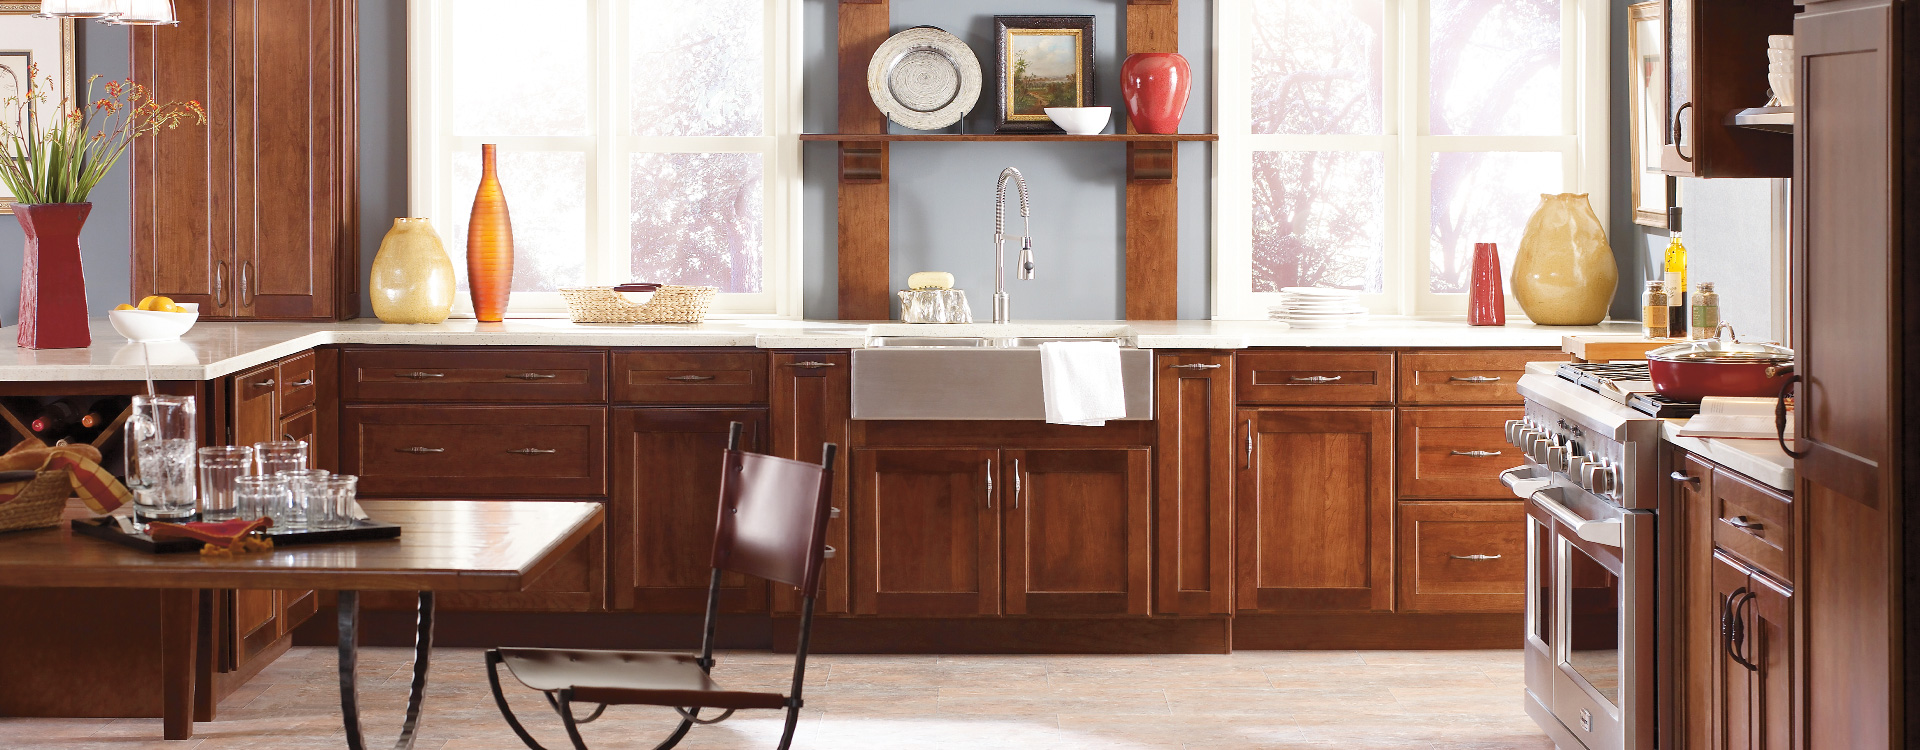 Kitchen Cabinets Store